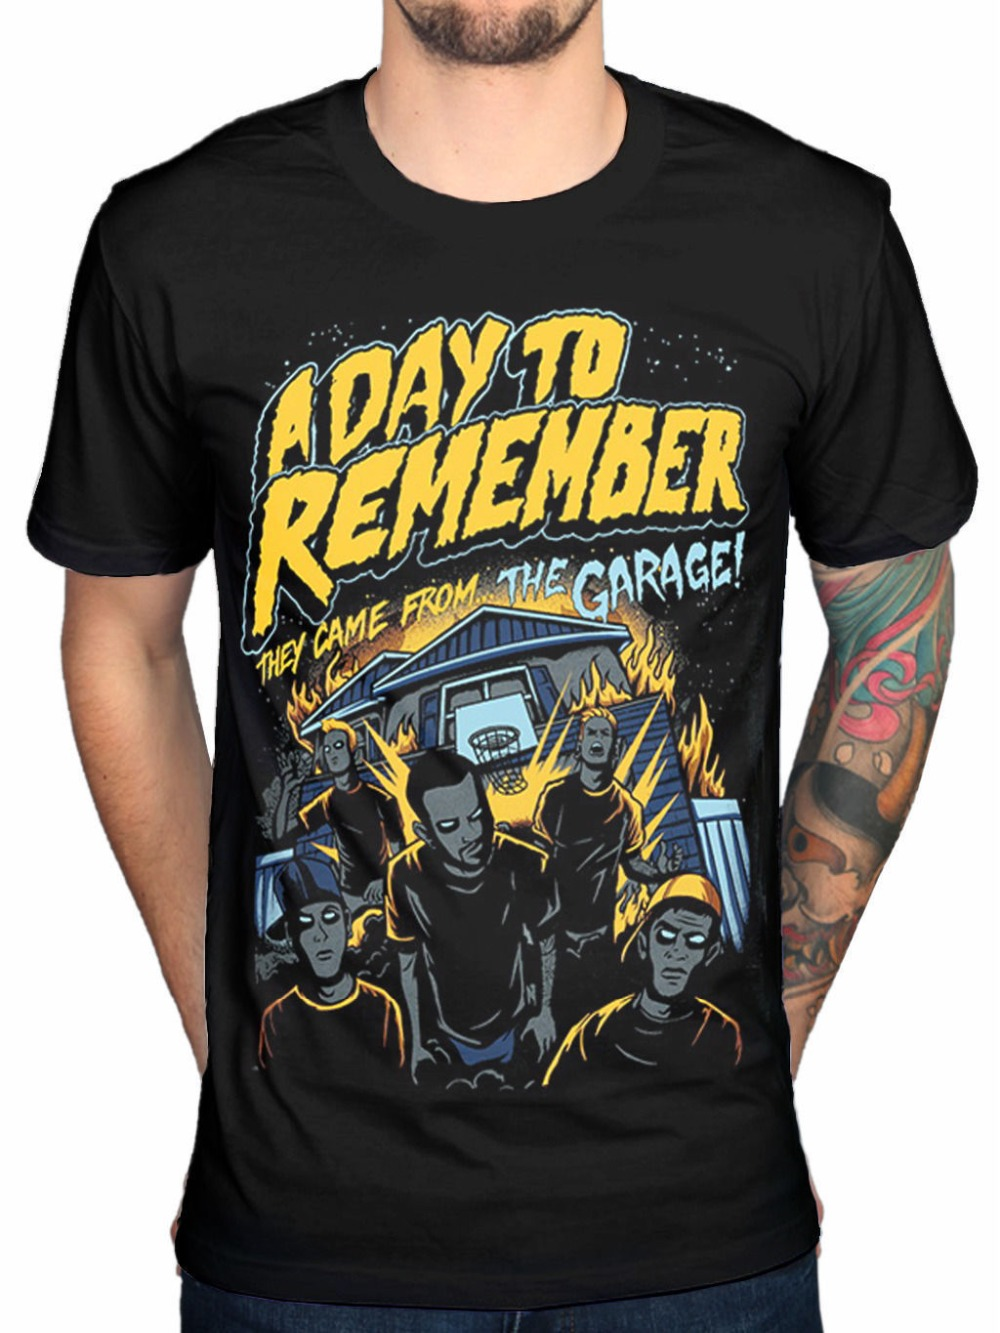 cd71b6101d5 New Arrival Male Tees Casual Boy T Shirt Tops DiscountsO-Neck A Day To  Remember